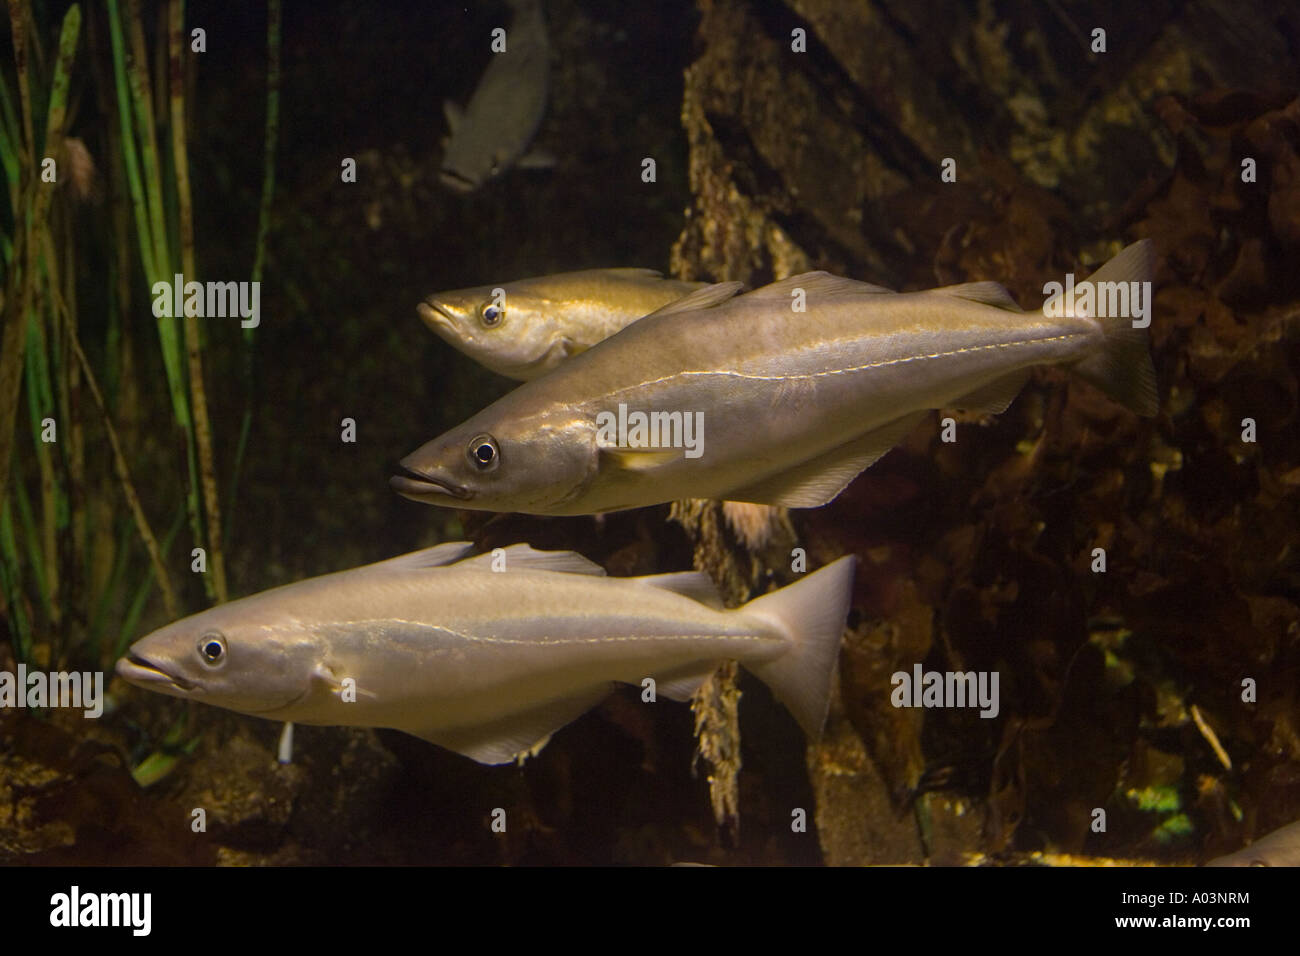 Pollack Pollachius pollachius a member of the cod family Aquariumgalicia Reboredo Galicia Spain - Stock Image